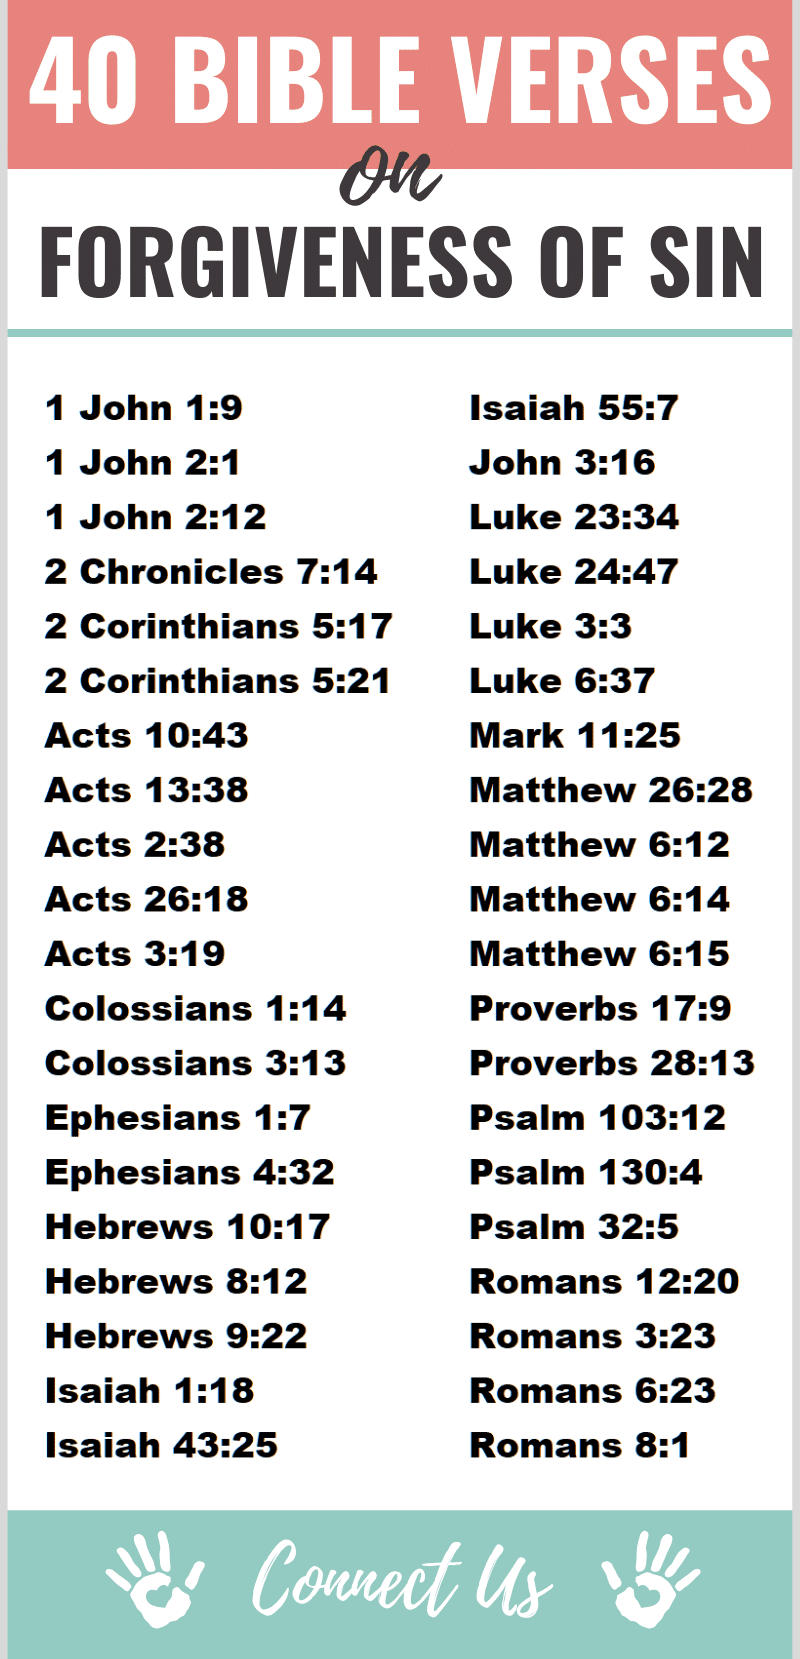 Bible Verses on Forgiveness of Sin